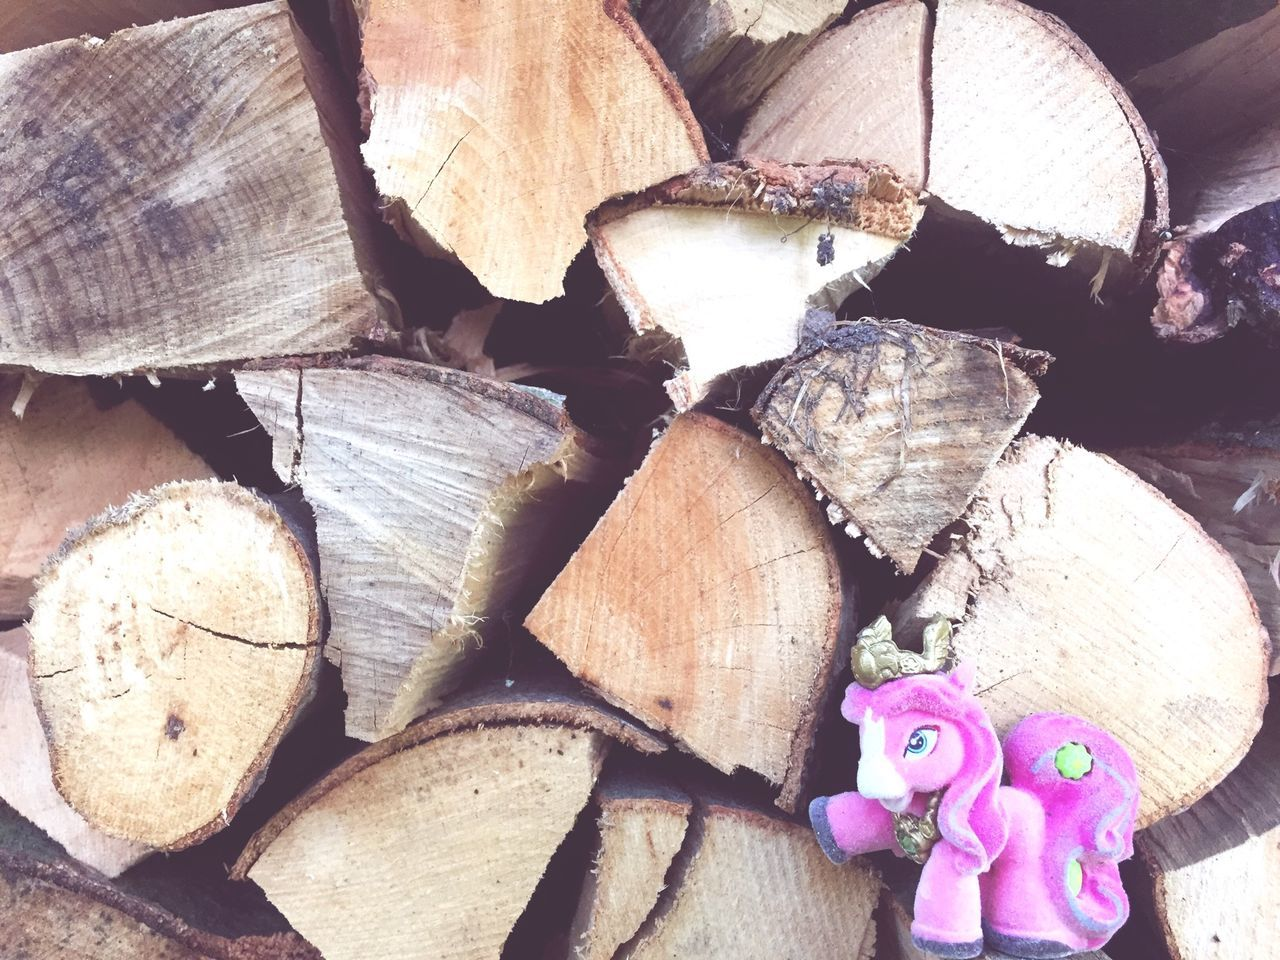 Pink Stuffed Toy Against Logs